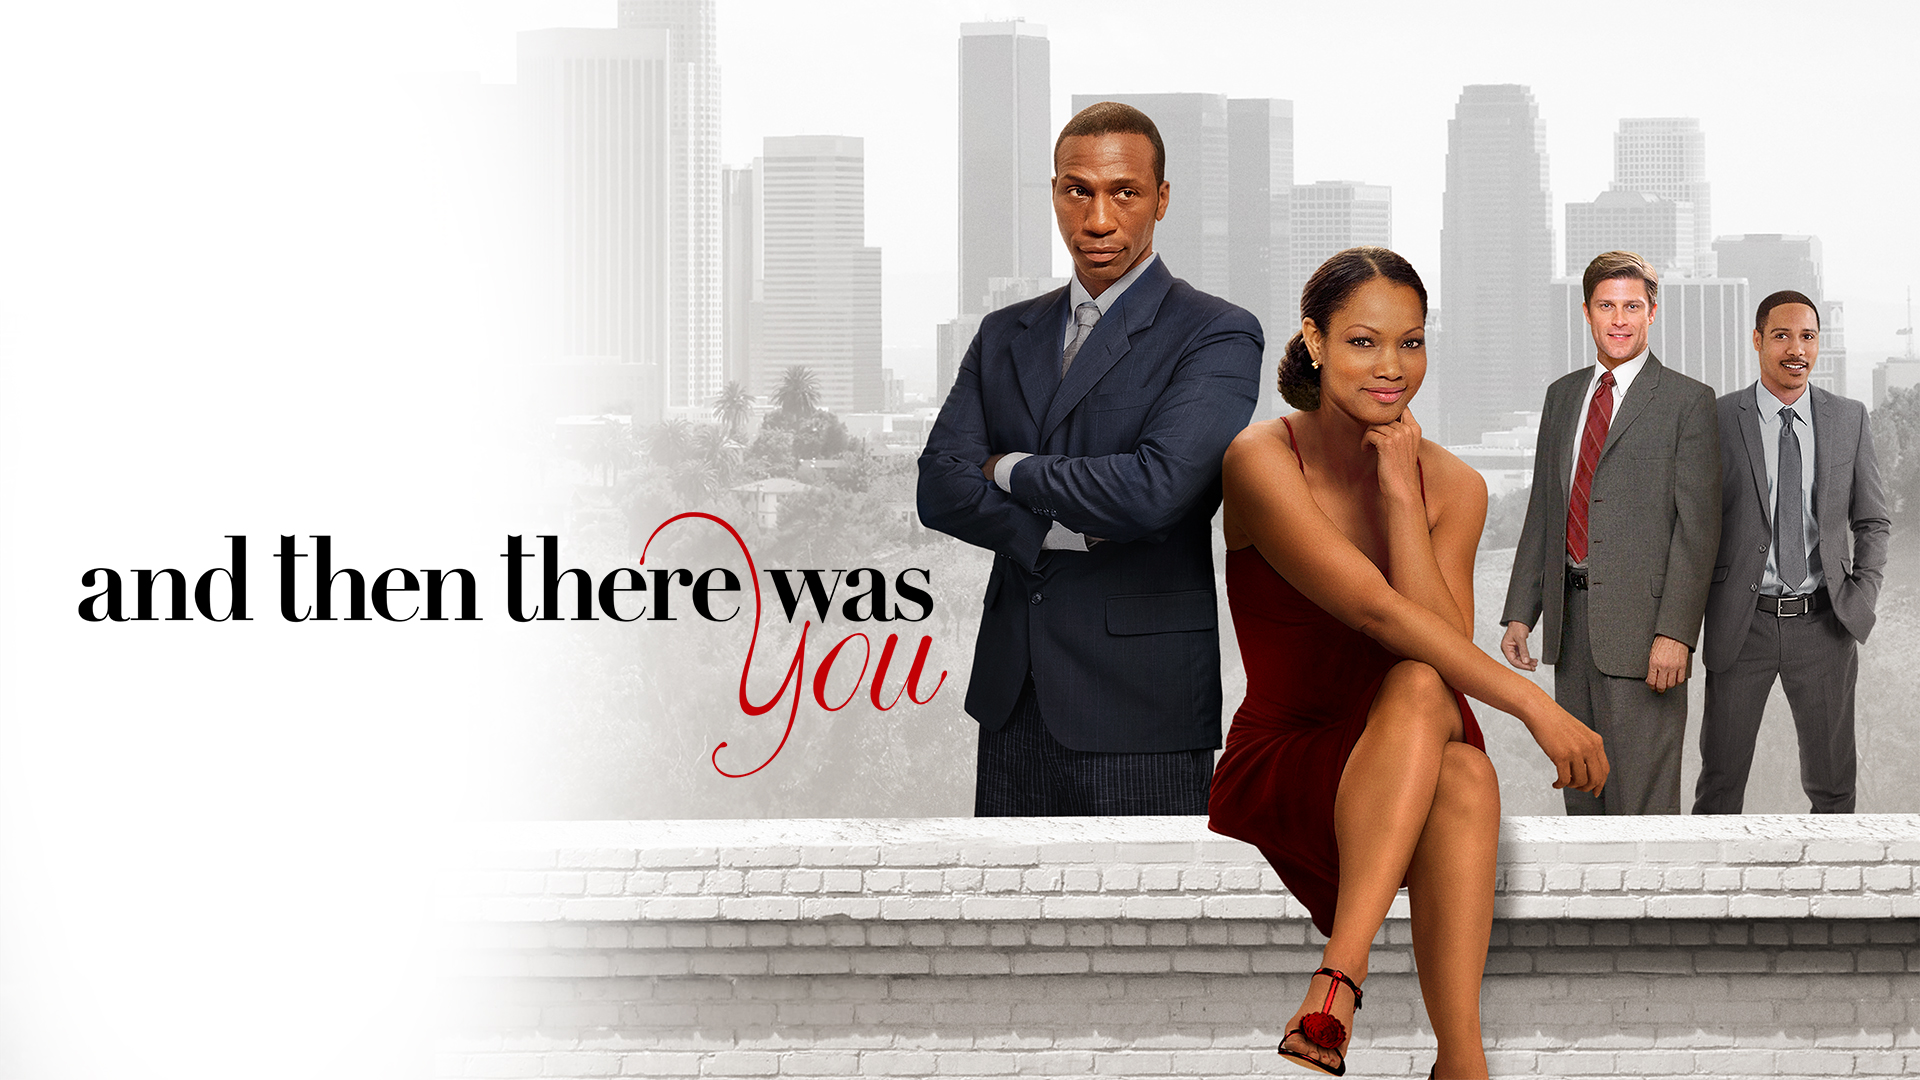 And Then There Was You - Romance category image